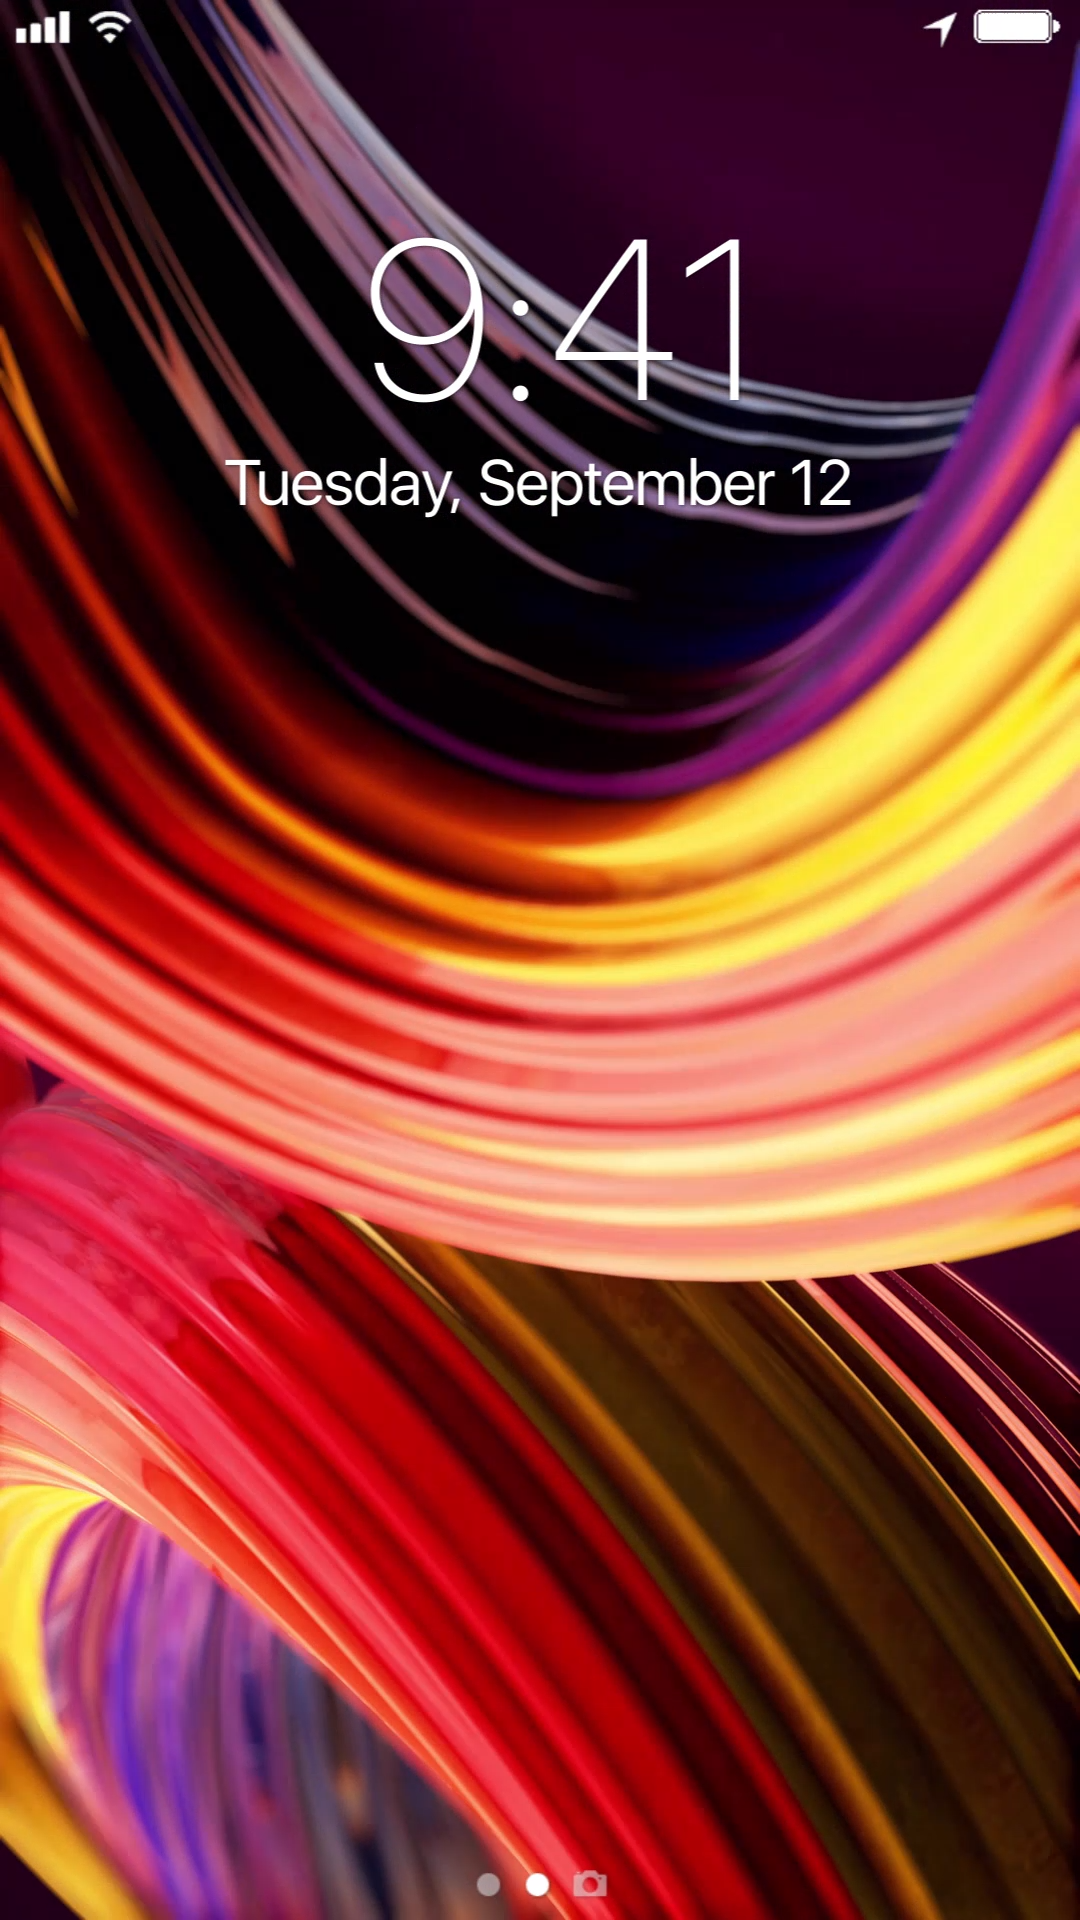 Awesome Live Wallpapers!